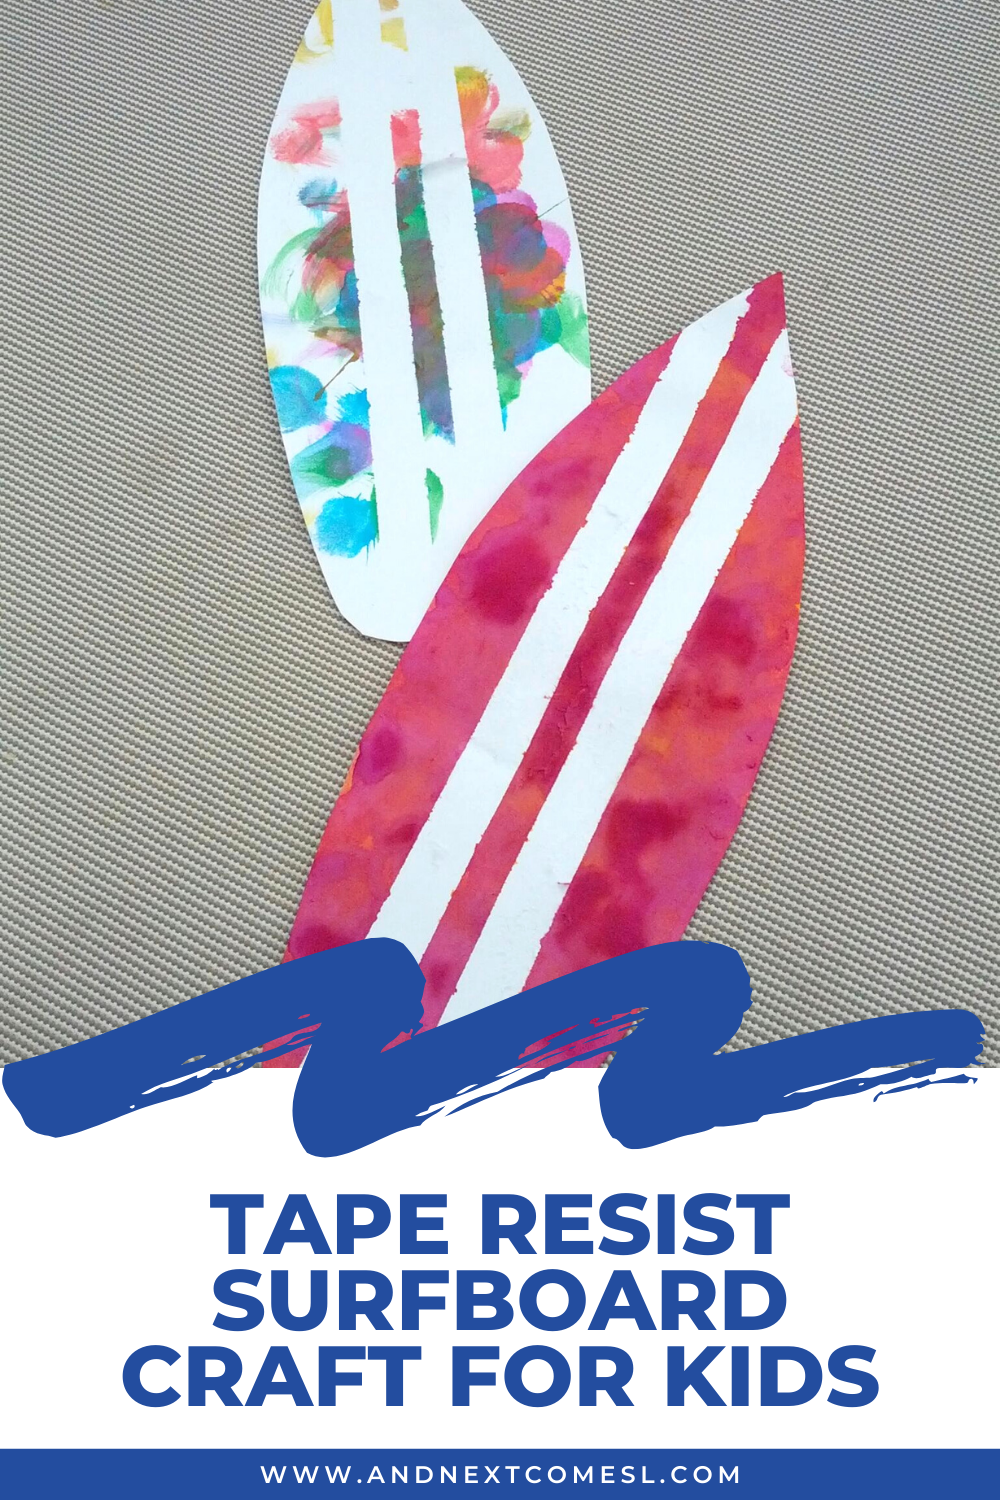 Tape resist art & surfboard craft for toddlers and preschool kids